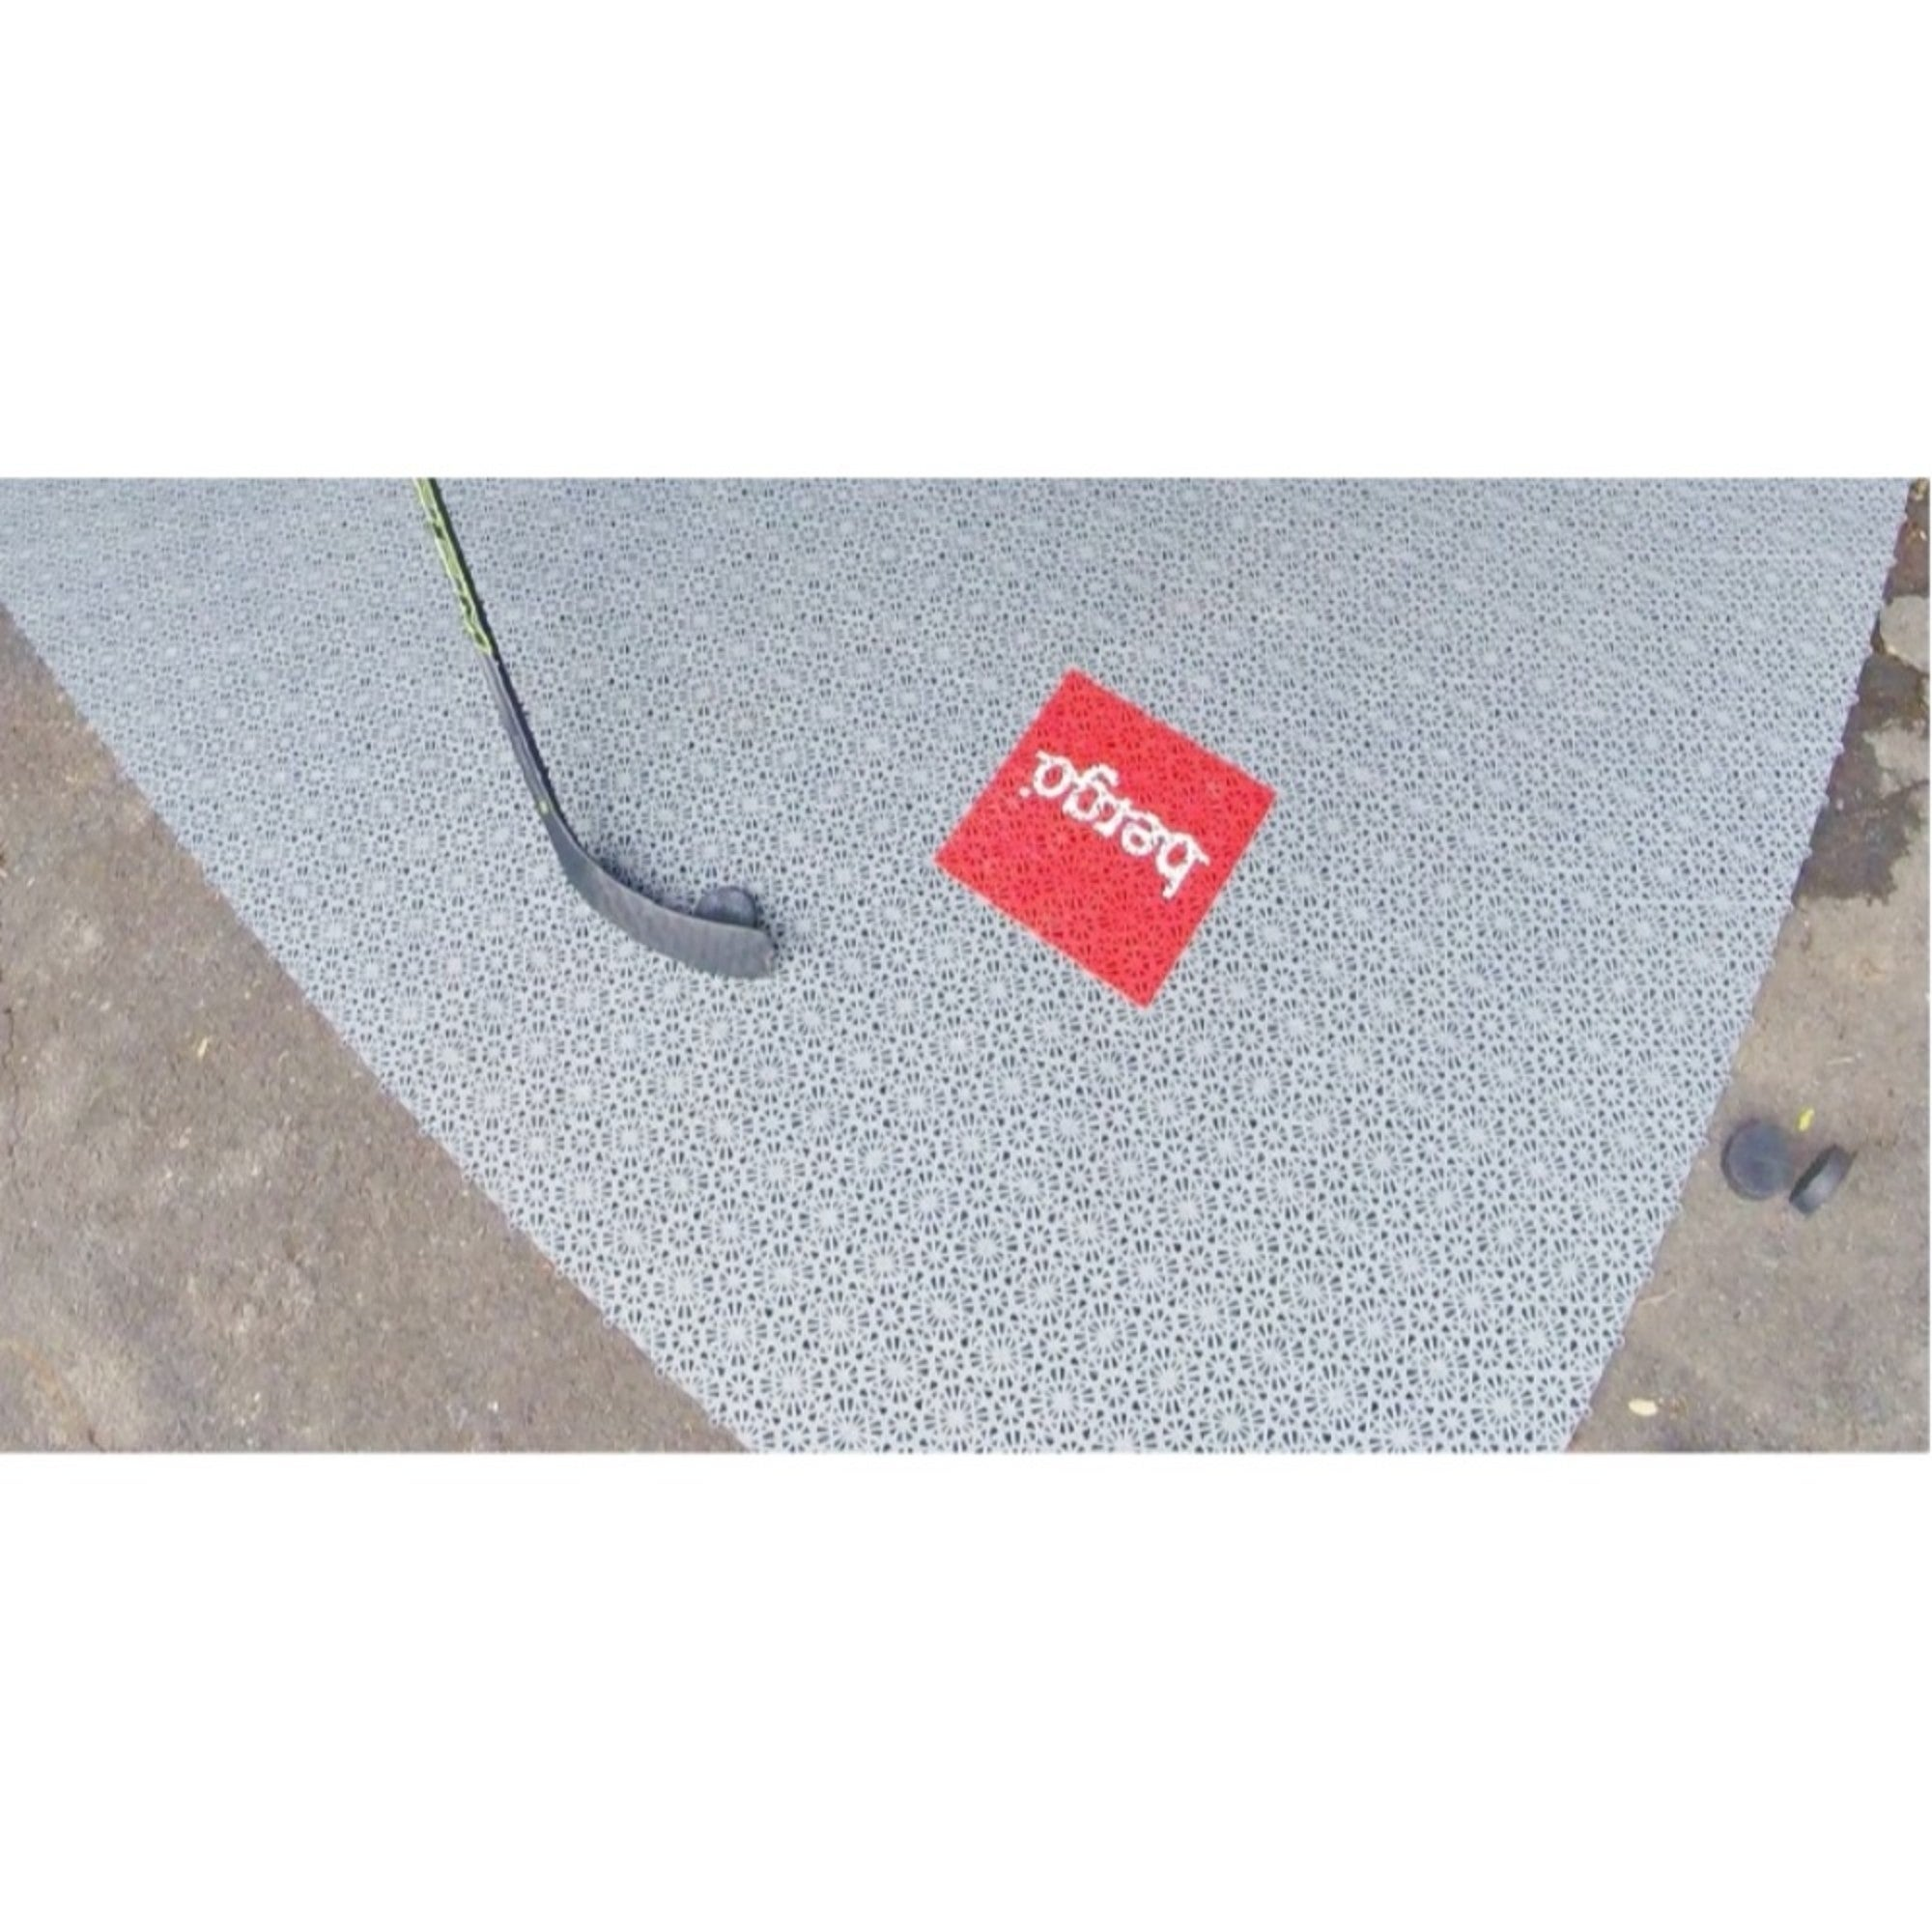 Mats inc hockey ramp outdoor deck tiles silver 6 x 9 54 pack mats inc hockey ramp outdoor deck tiles silver 6 x 9 54 pack free shipping today overstock 26317222 dailygadgetfo Gallery